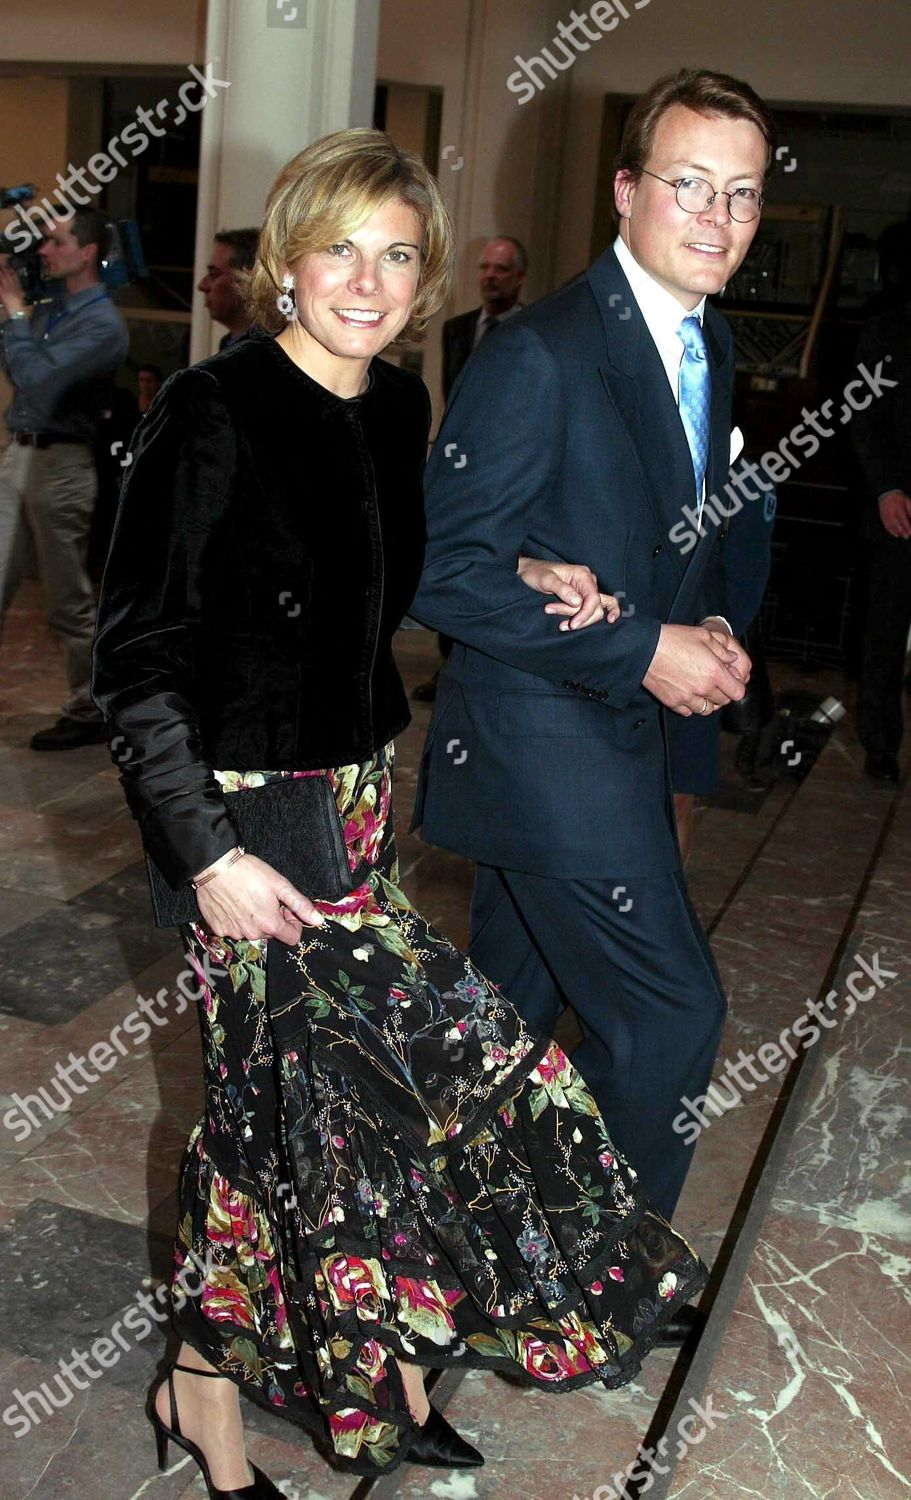 CONCERT ON THE EVE OF THE WEDDING OF PRINCE LAURENT AND CLAIRE COOMBS, PALAIS DE BEAUX ARTS, BRUSSELS, BELGIUM - 11 APR 2003: стоковое фото